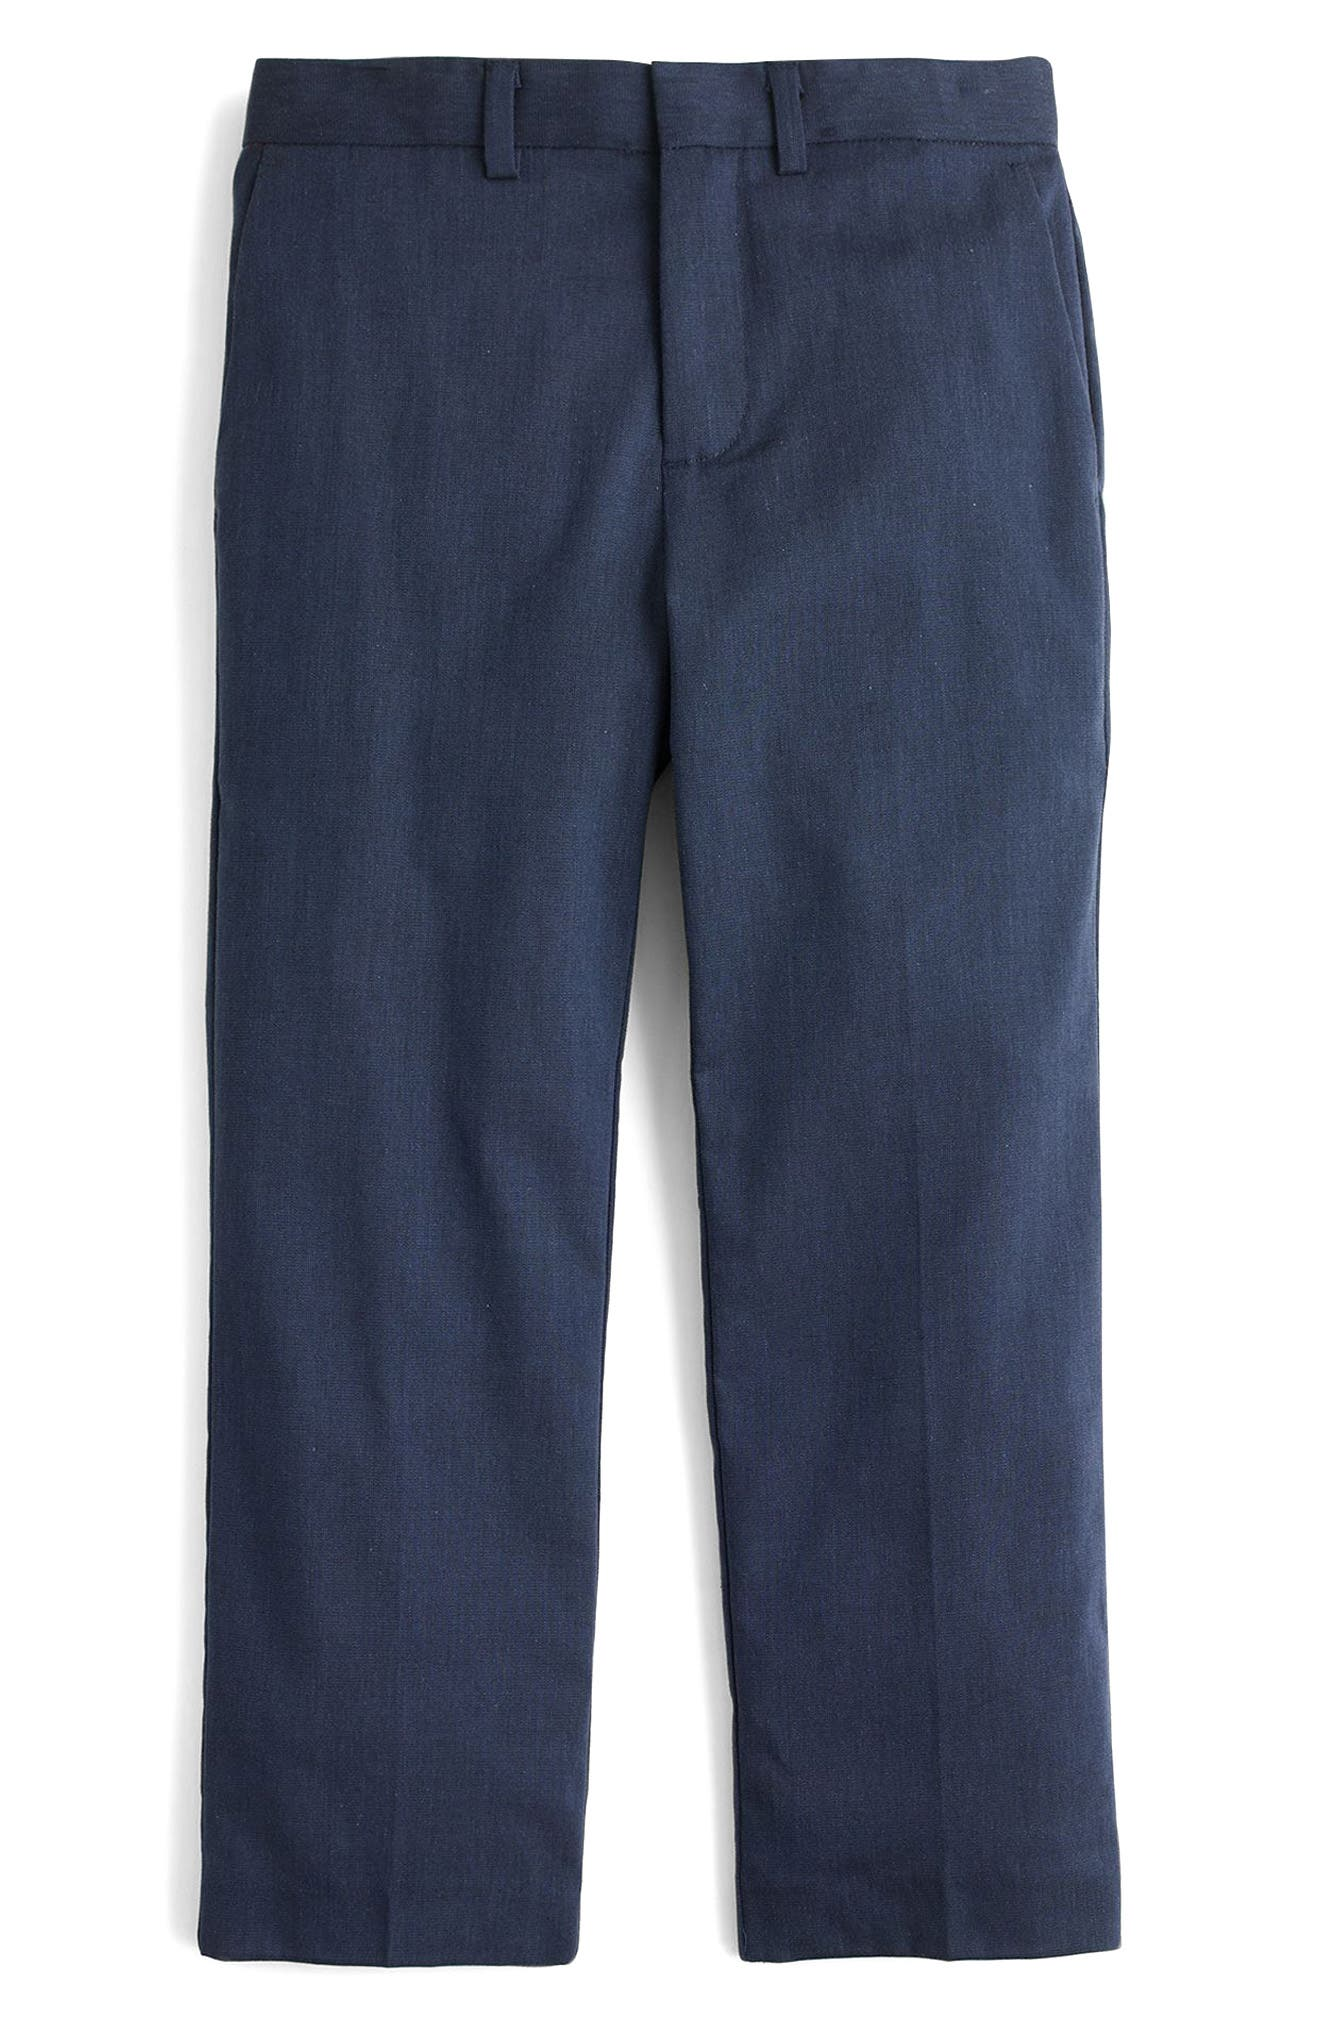 Ludlow Suit Pants,                         Main,                         color, Navy